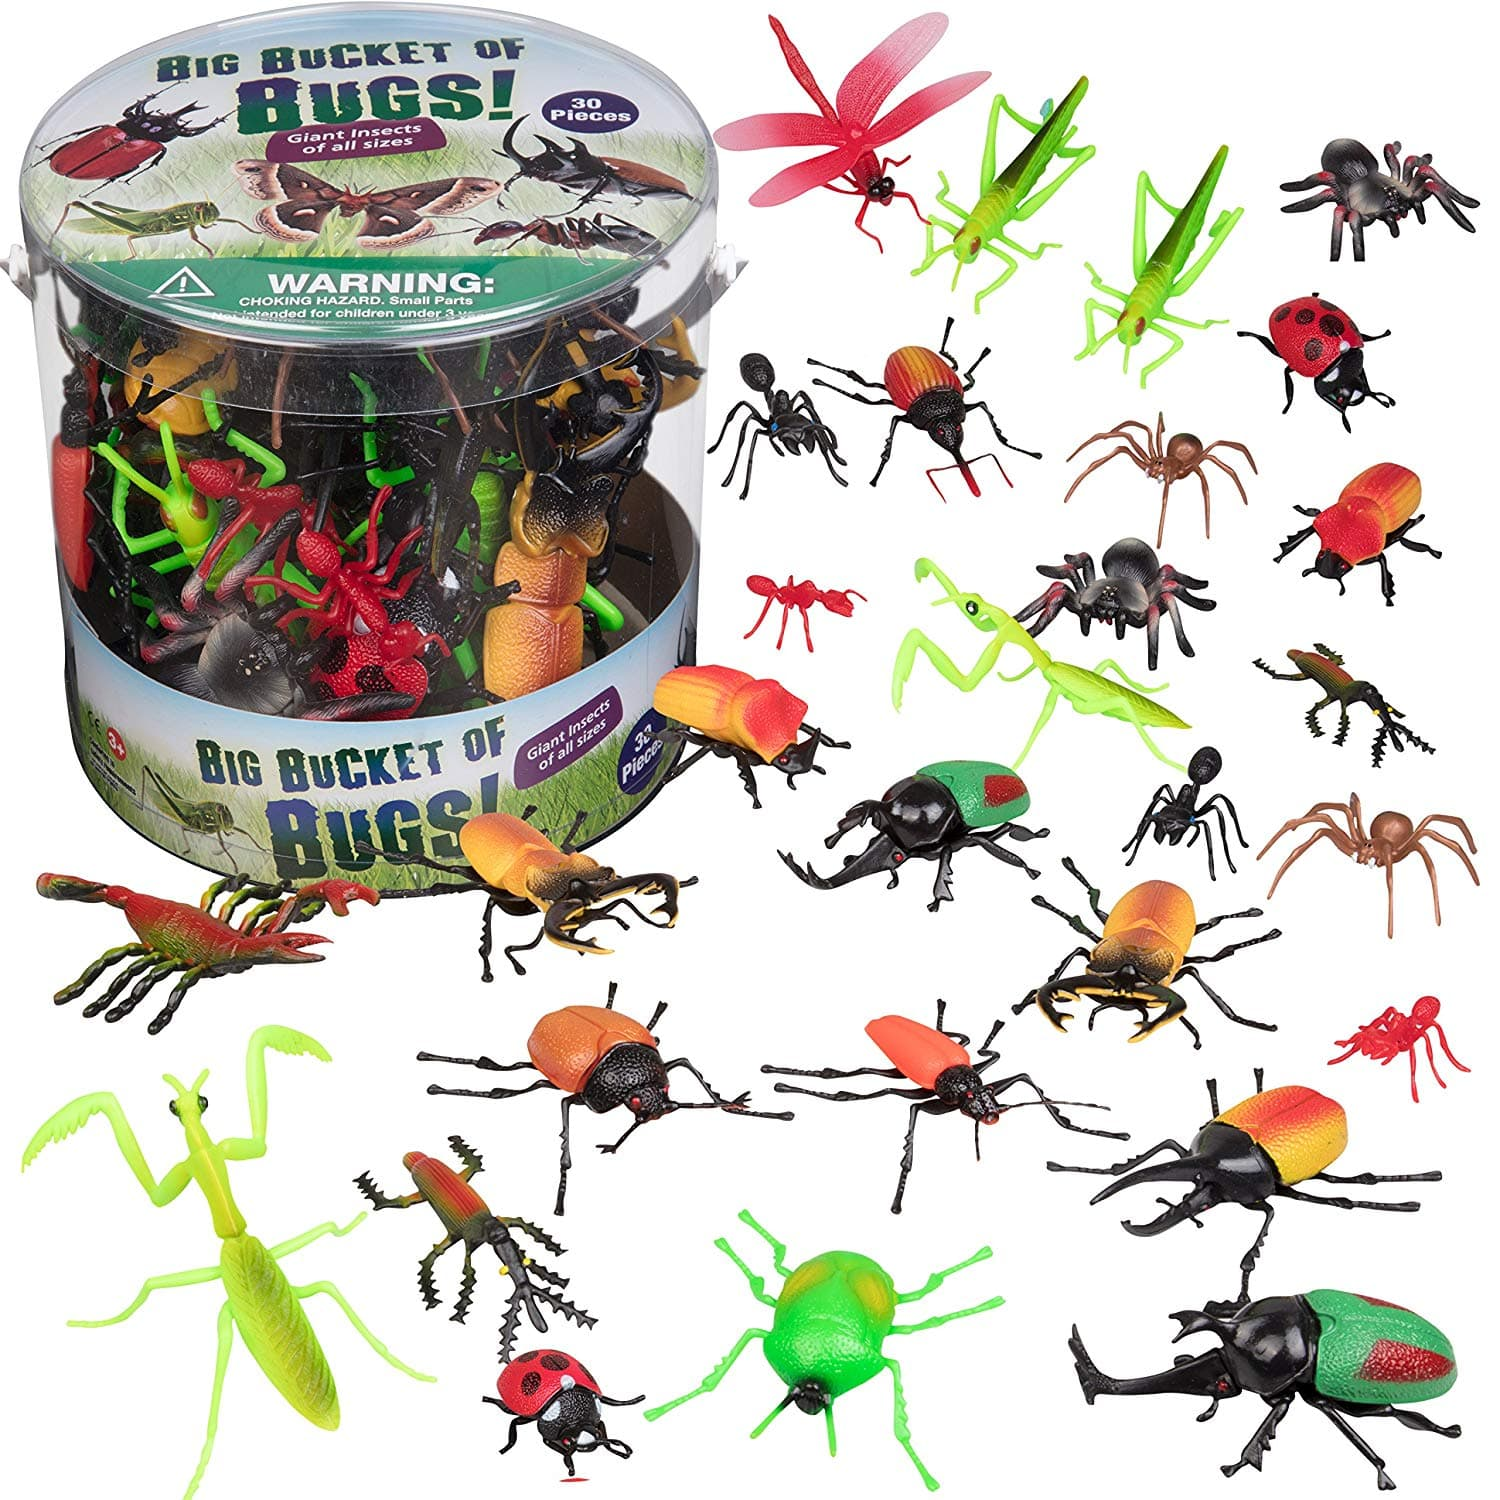 Bug Action Figure - 30 Giant Insects Playset - $11.99 + Free Shipping for Prime Members